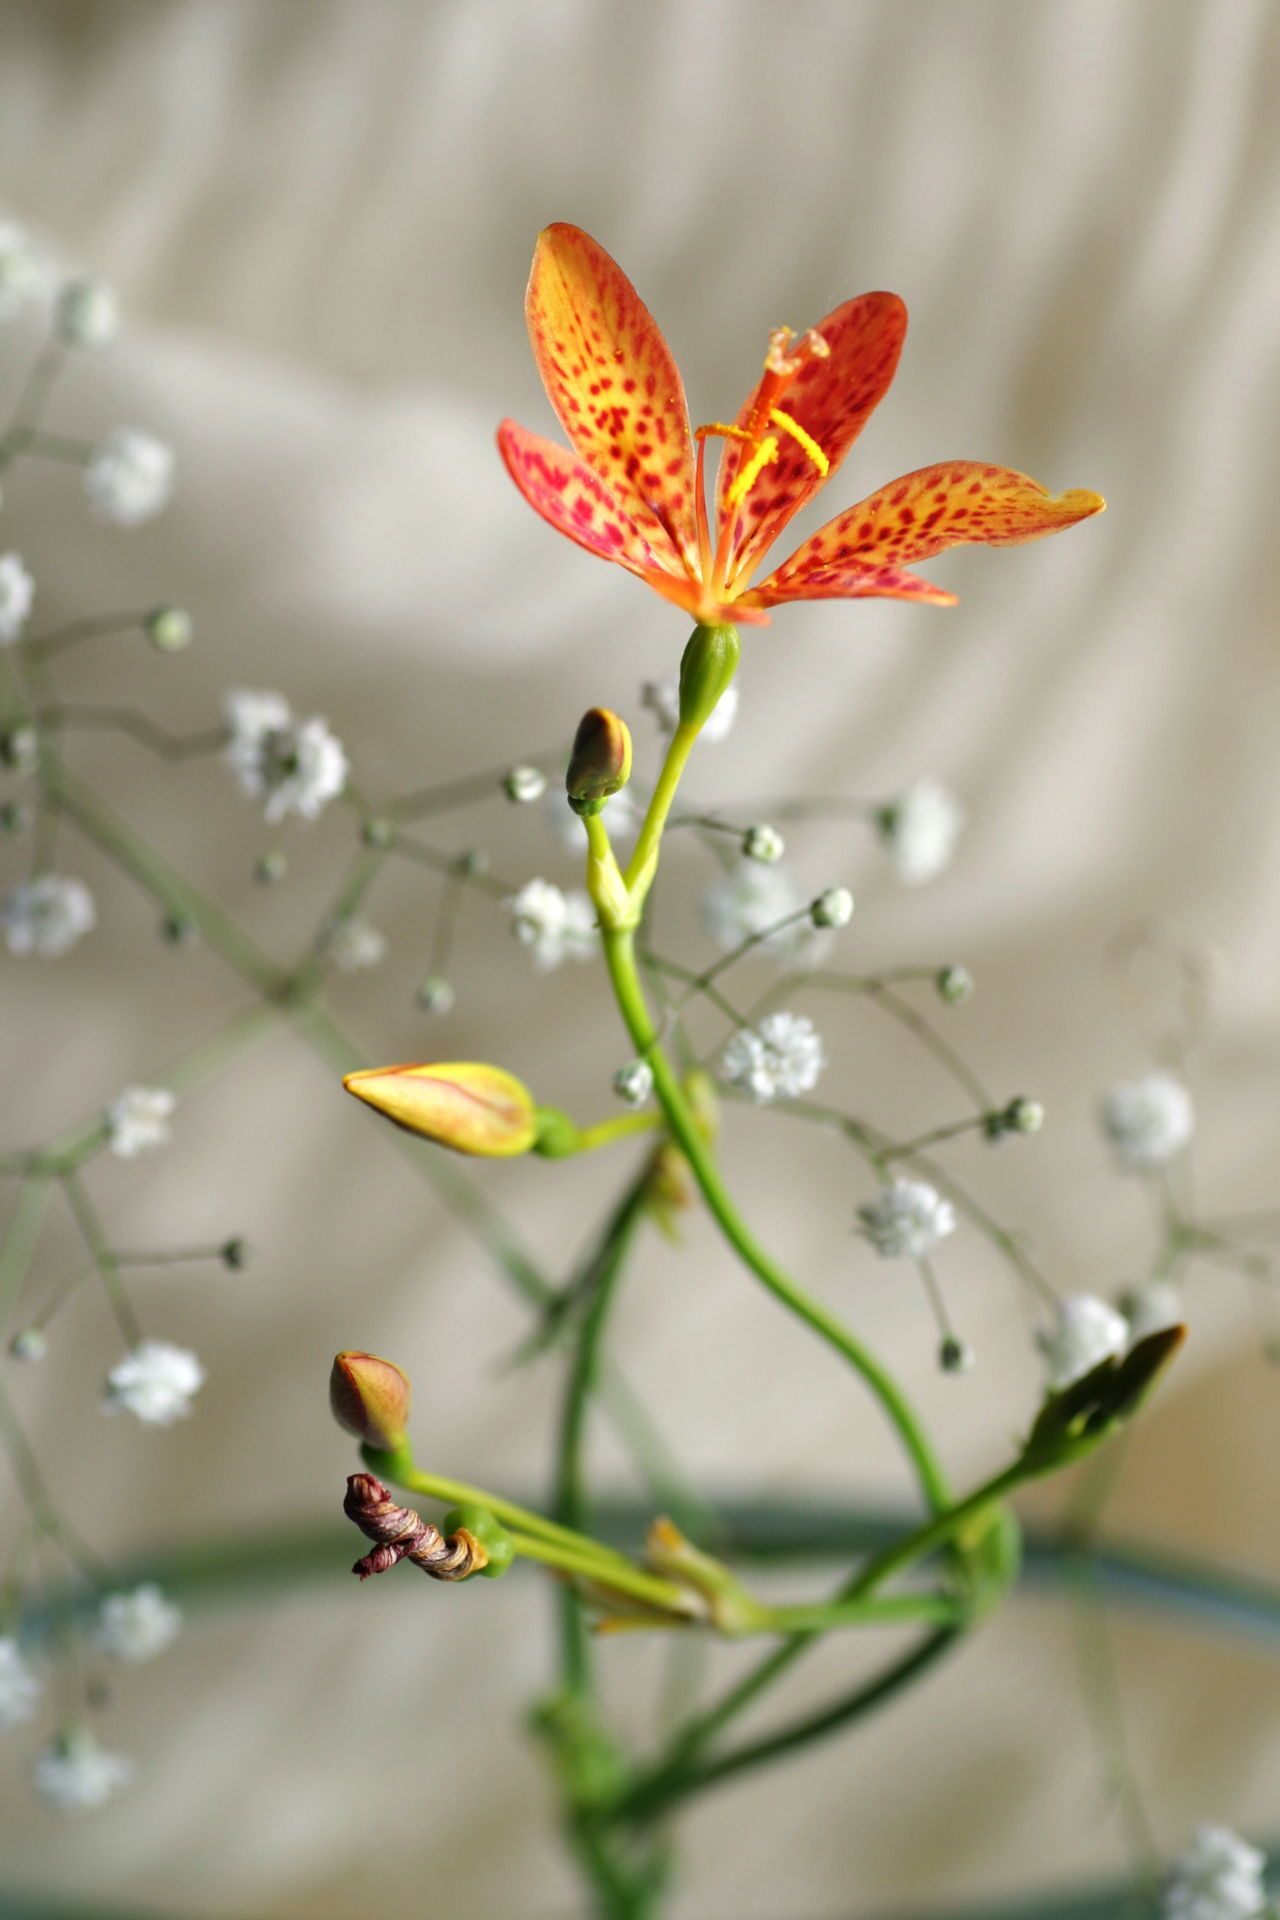 Symbolic Meanings of Flowers That You've Been Wanting to